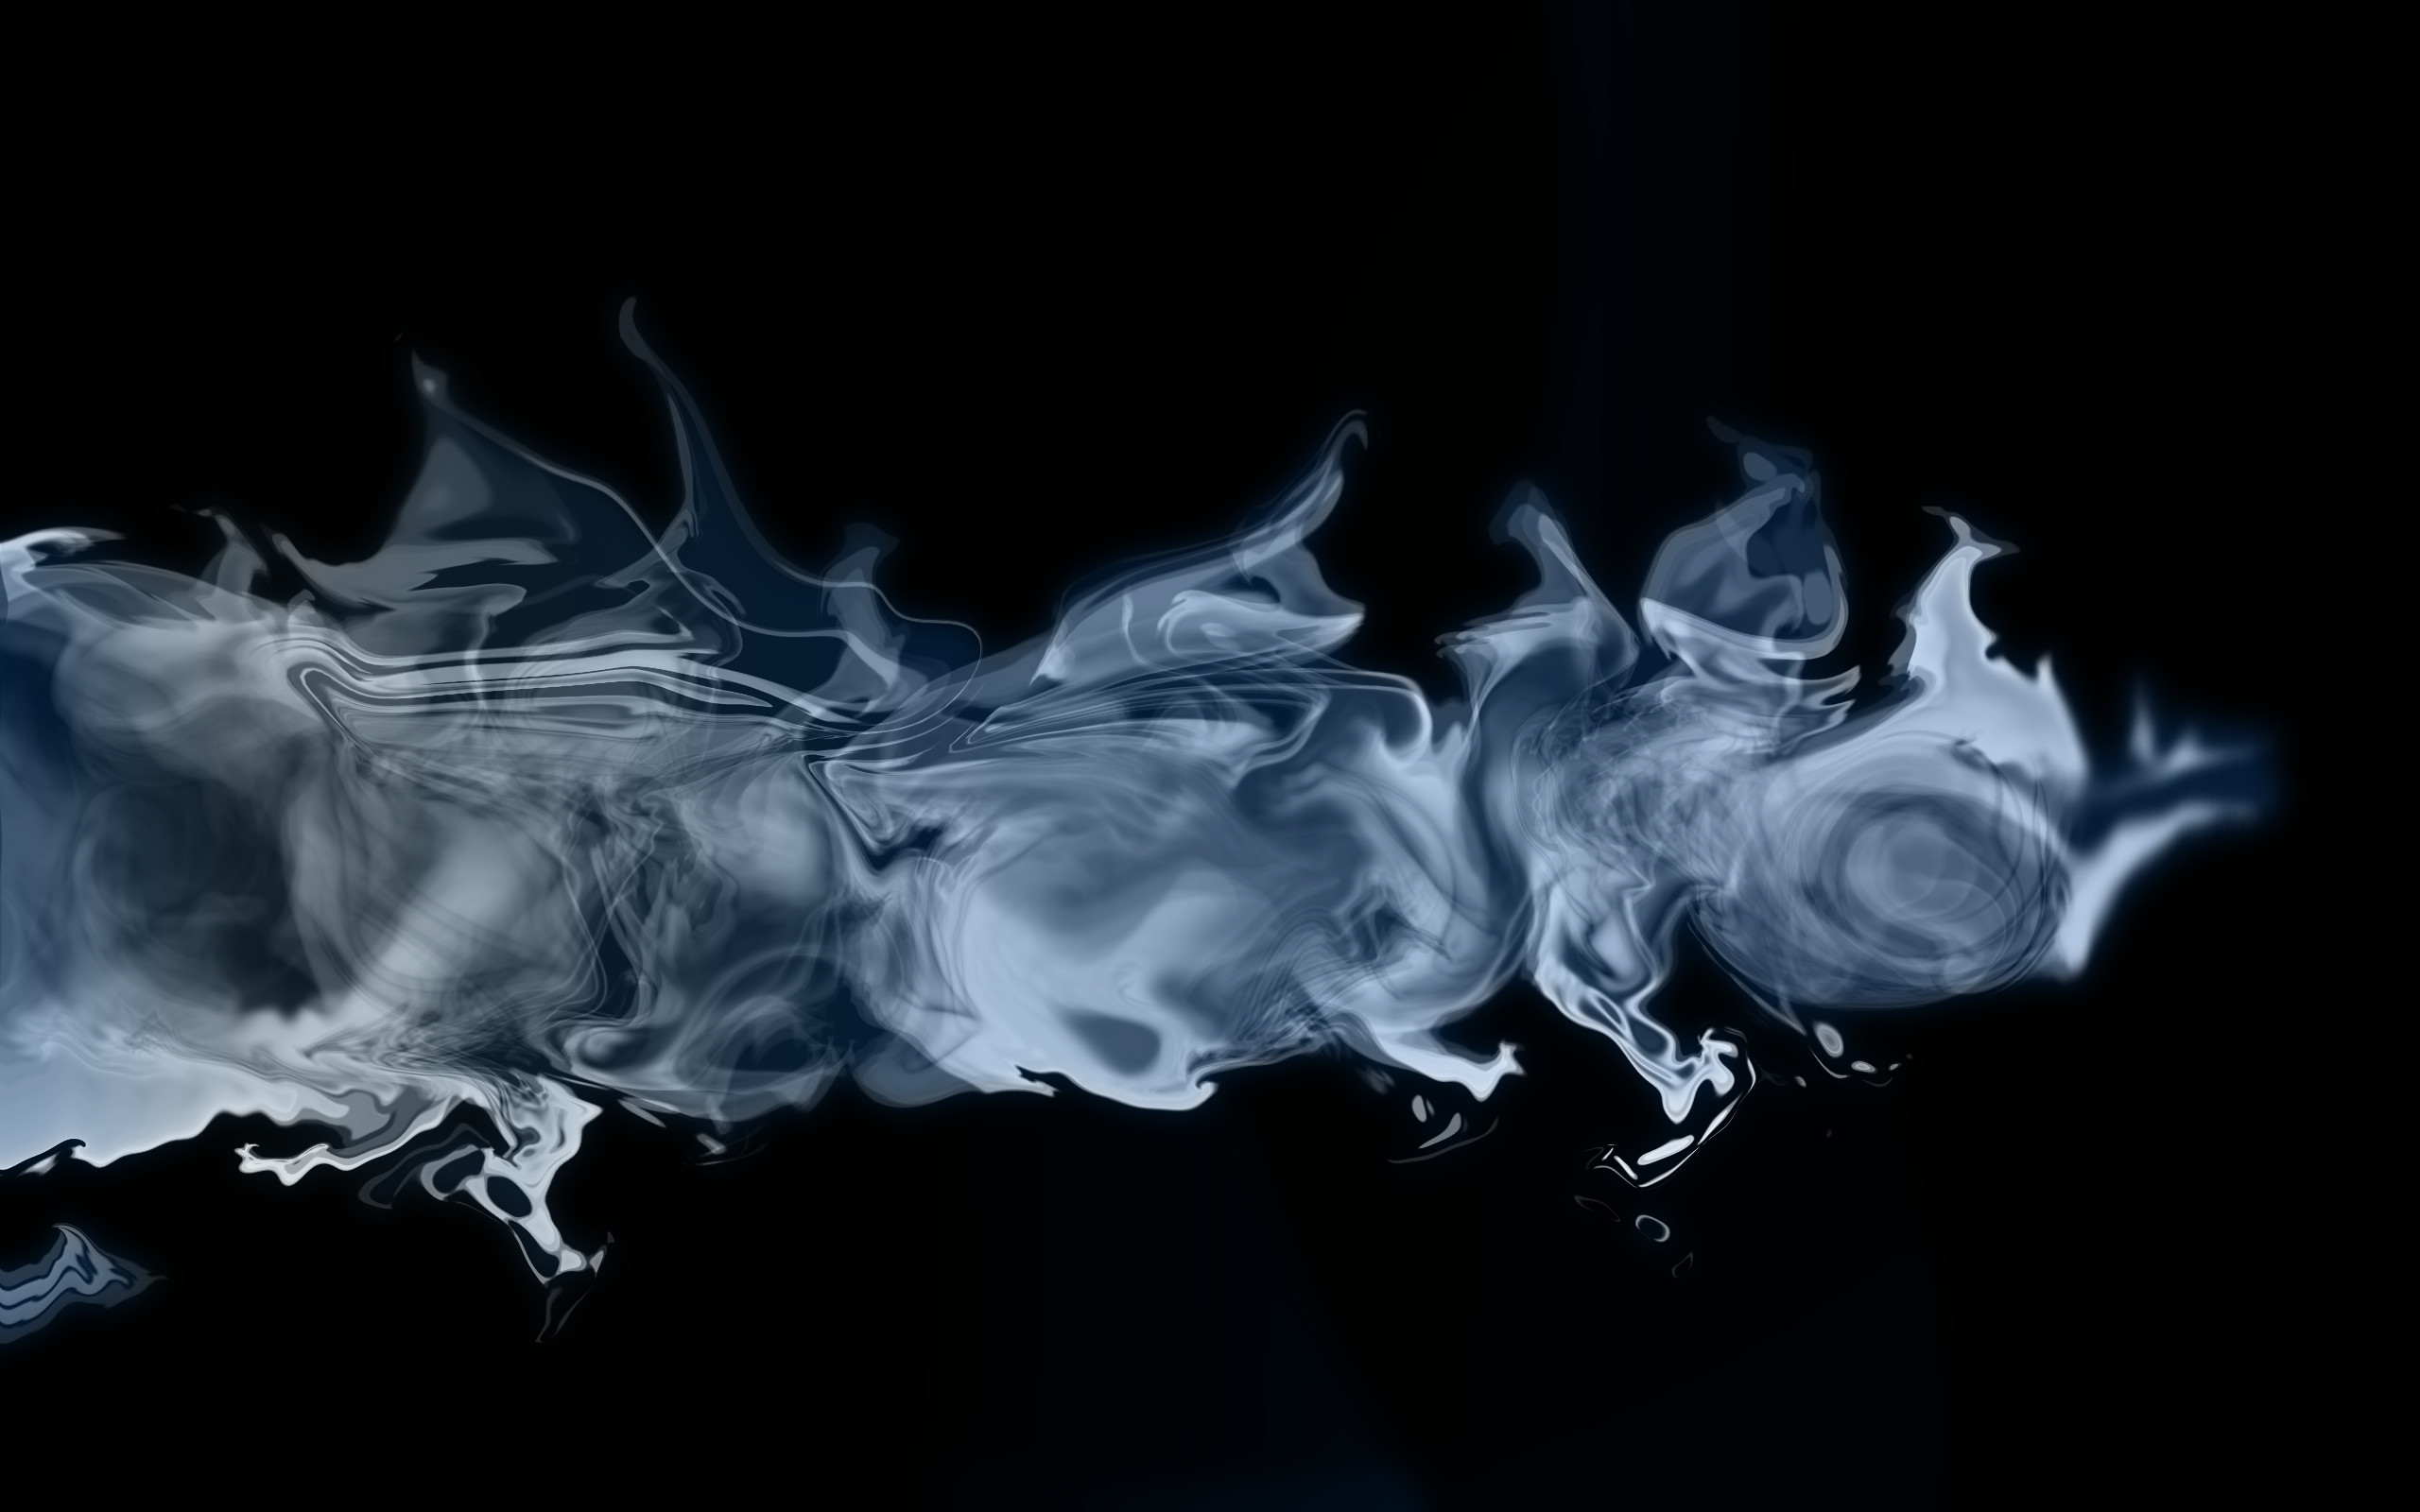 2560x1600 Amazing Smoke Photography Wallpaper HD Wallpaper